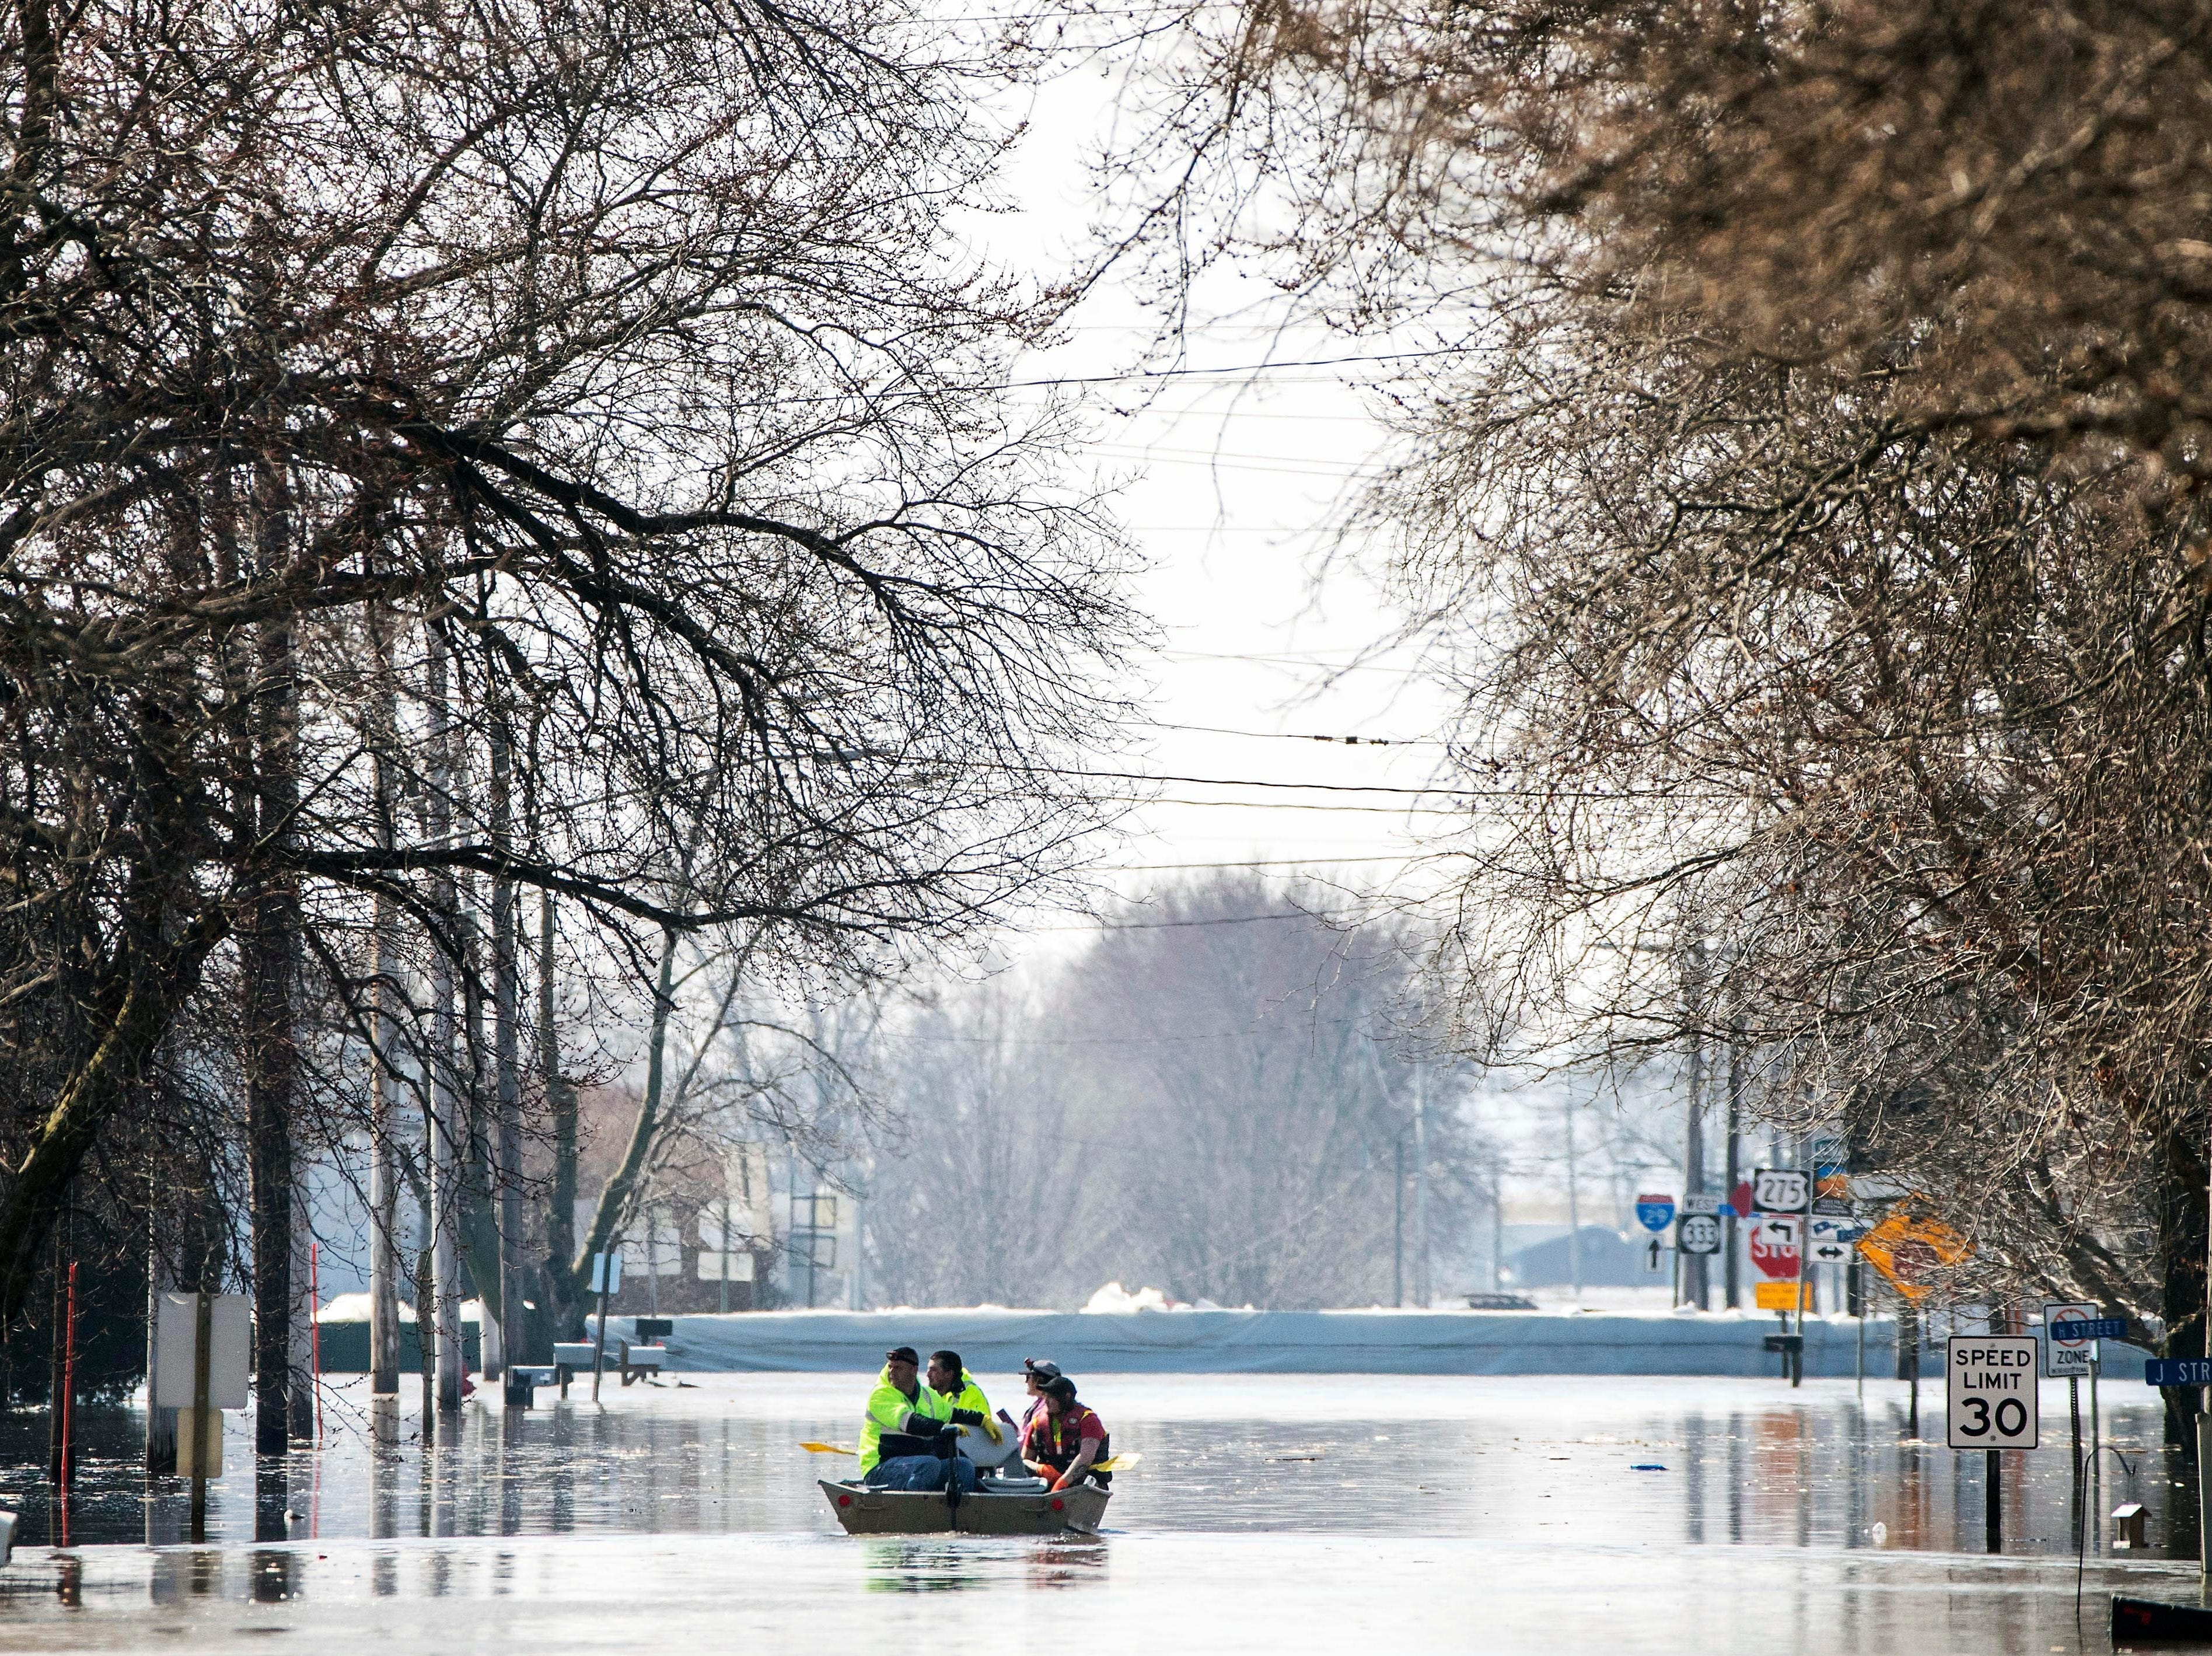 People in a boat float down floodwaters that cover Washington Street on March 20, 2019, in Hamburg, Iowa.